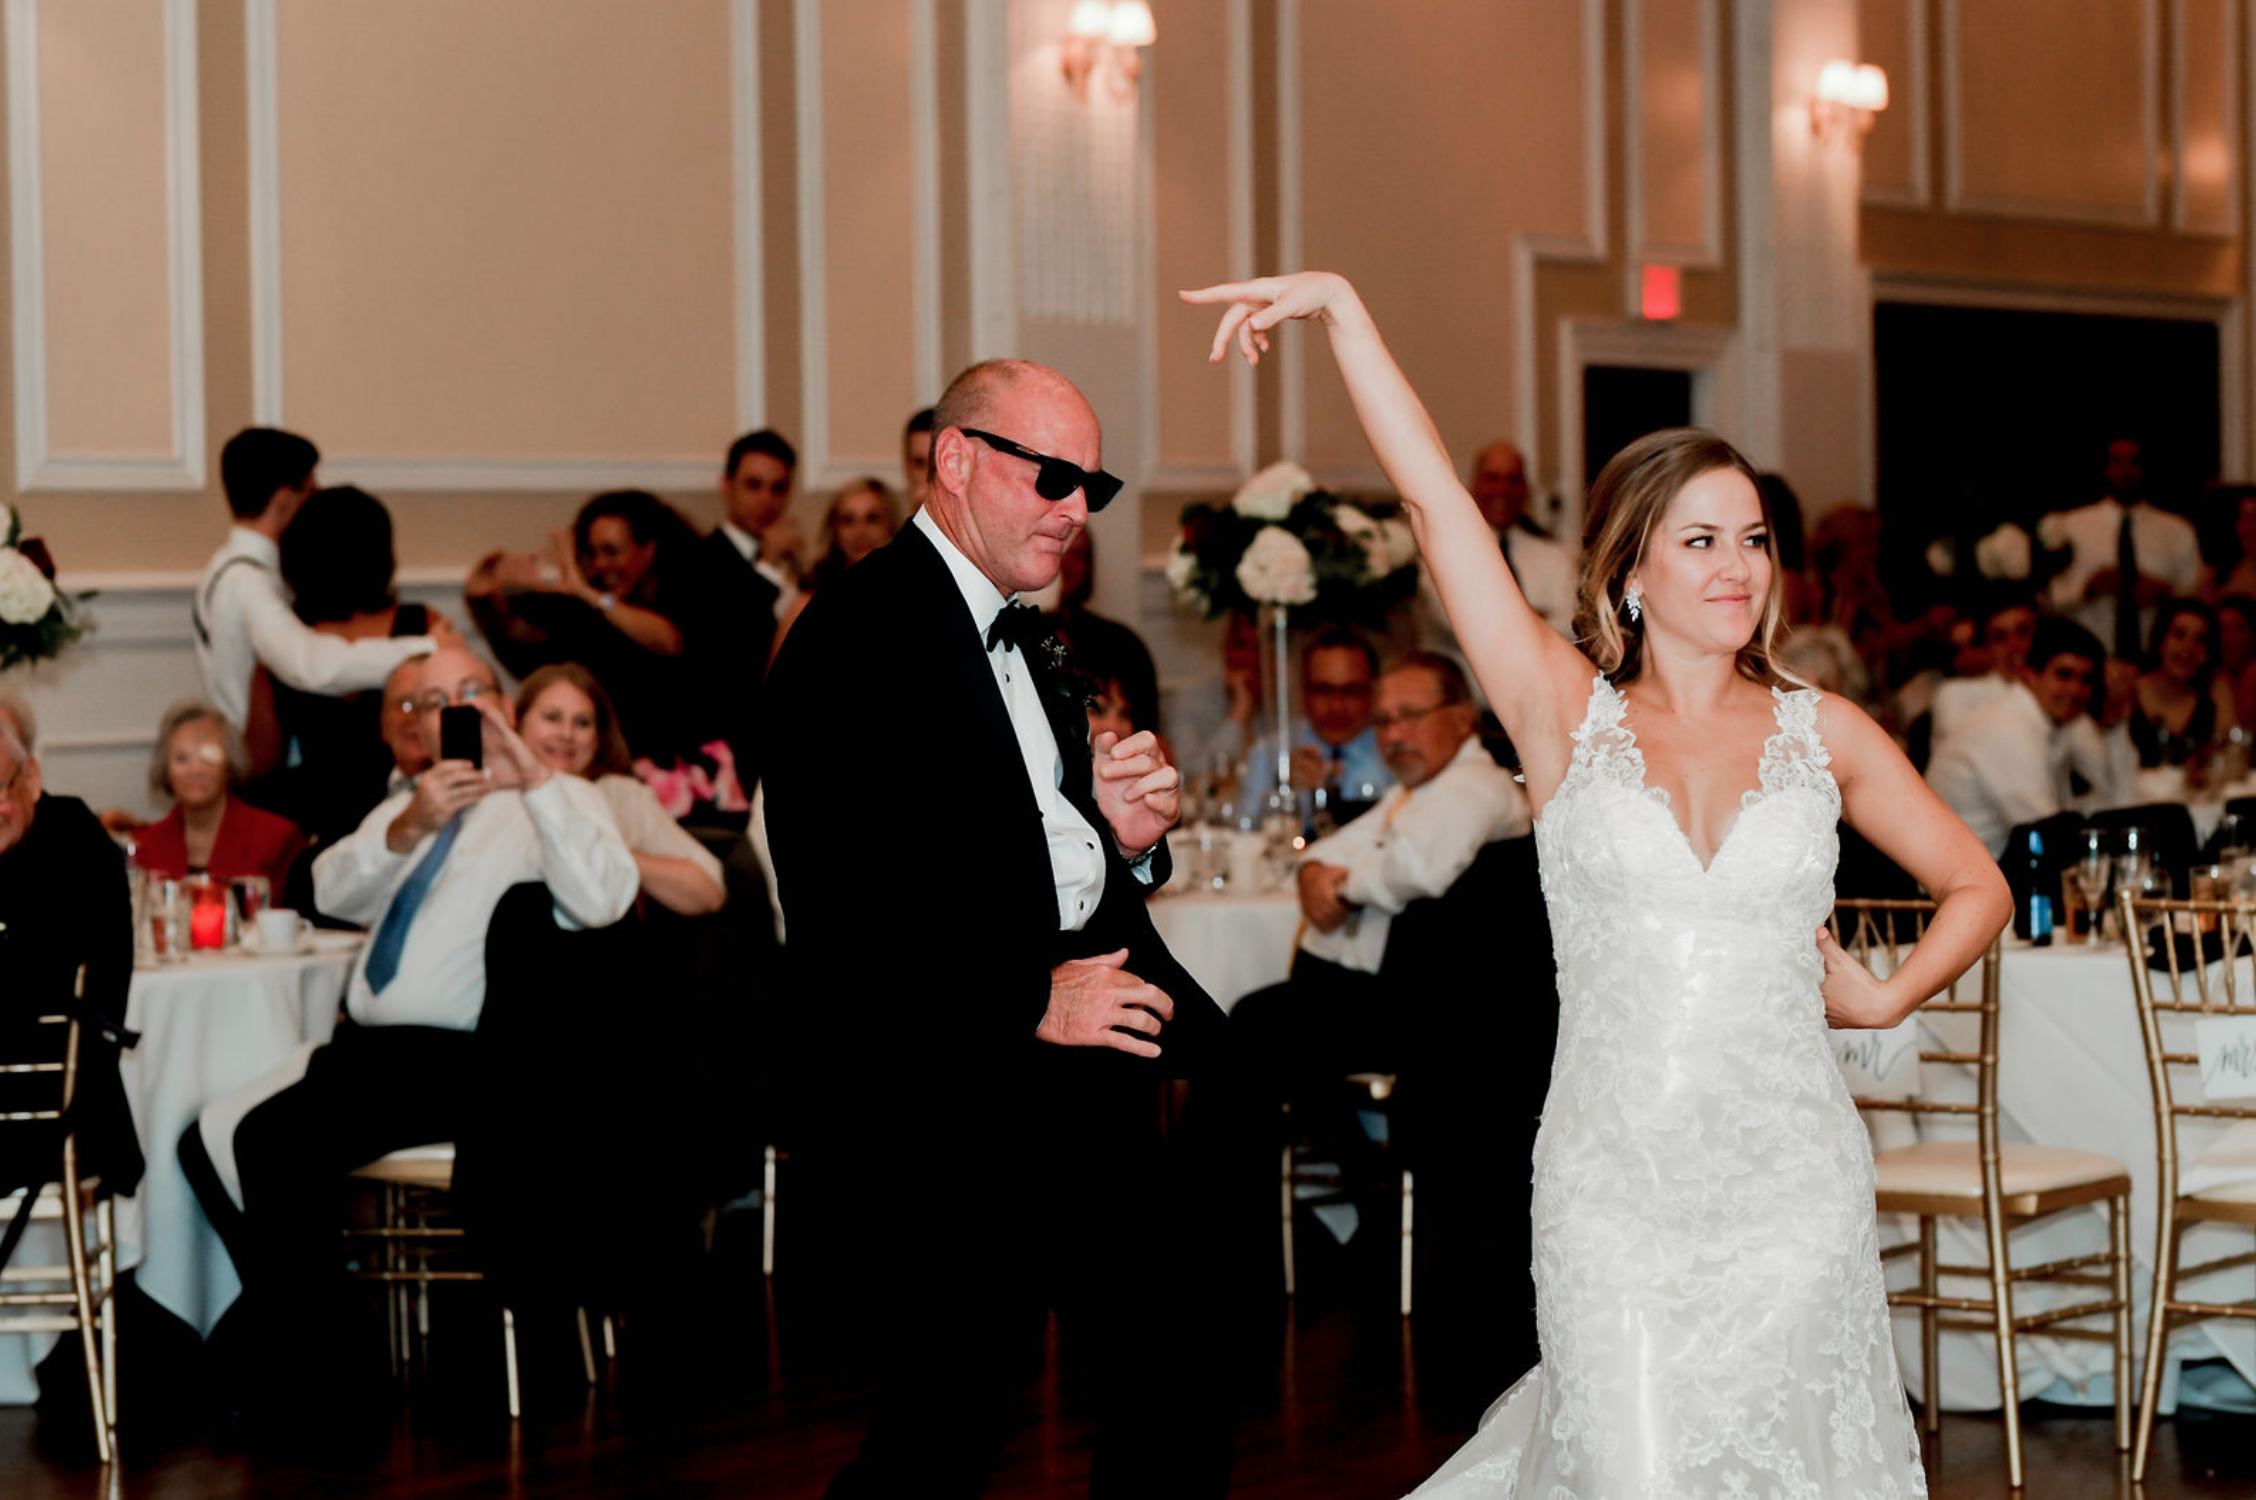 Father of the bride and bride share a fun father/daughter dance at Buffalo, NY wedding planned by Exhale Events. Find more wedding inspiration at exhale-events.com!